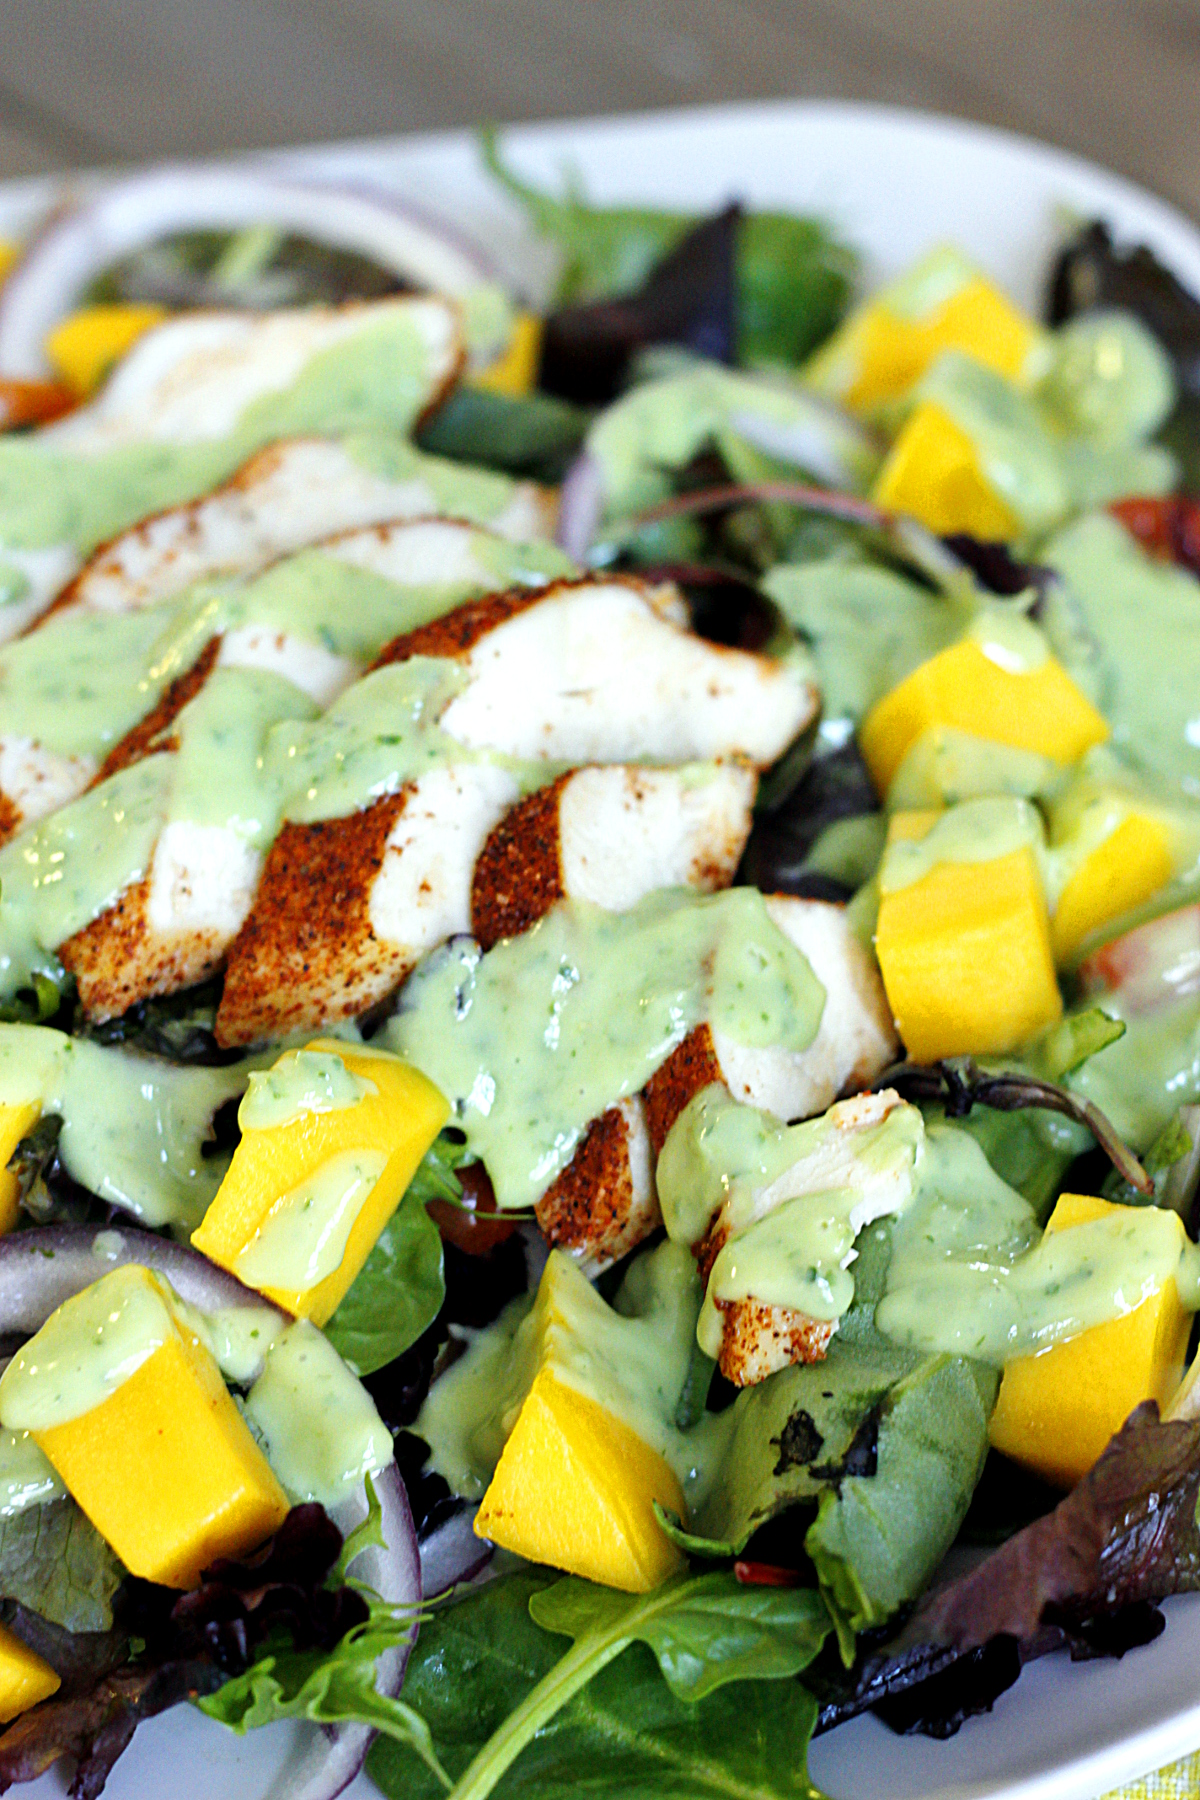 ... Chicken and Mango Salad with Creamy Avocado Dressing - belle vie